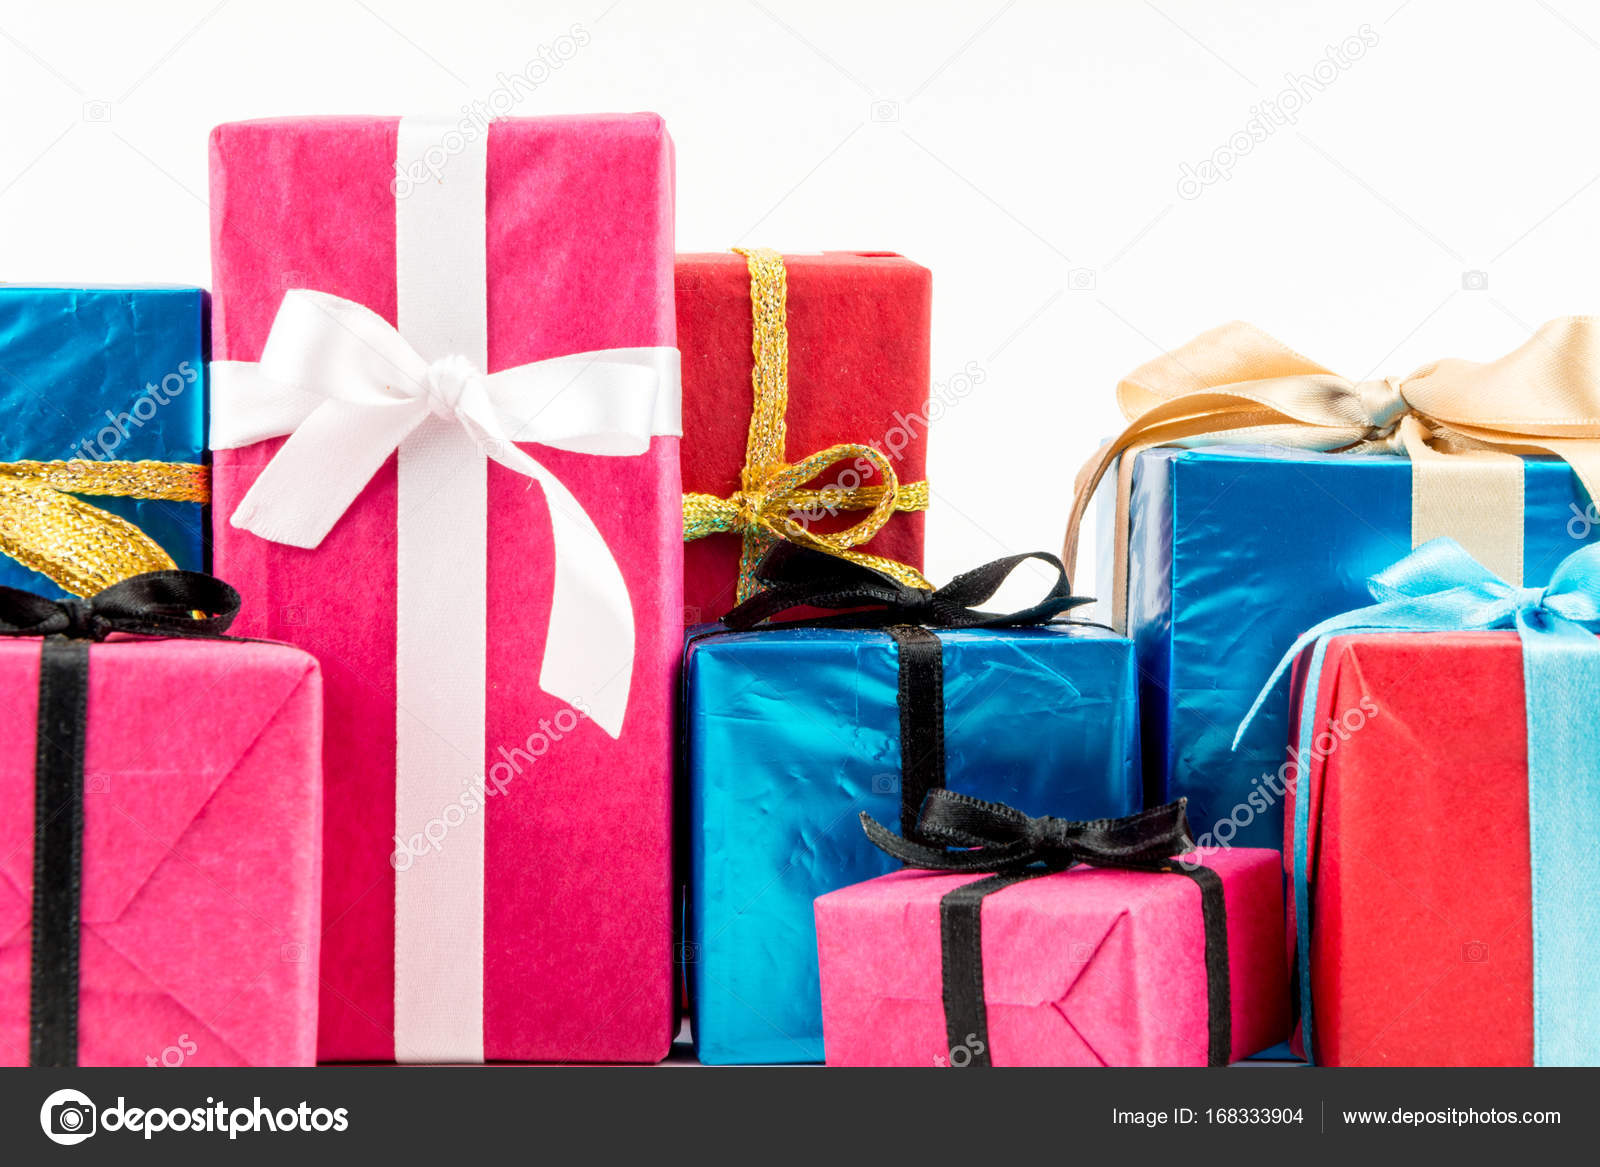 Big pile of colorful wrapped gift boxes isolated on white background big pile of colorful wrapped gift boxes isolated on white background mountain gifts beautiful negle Image collections